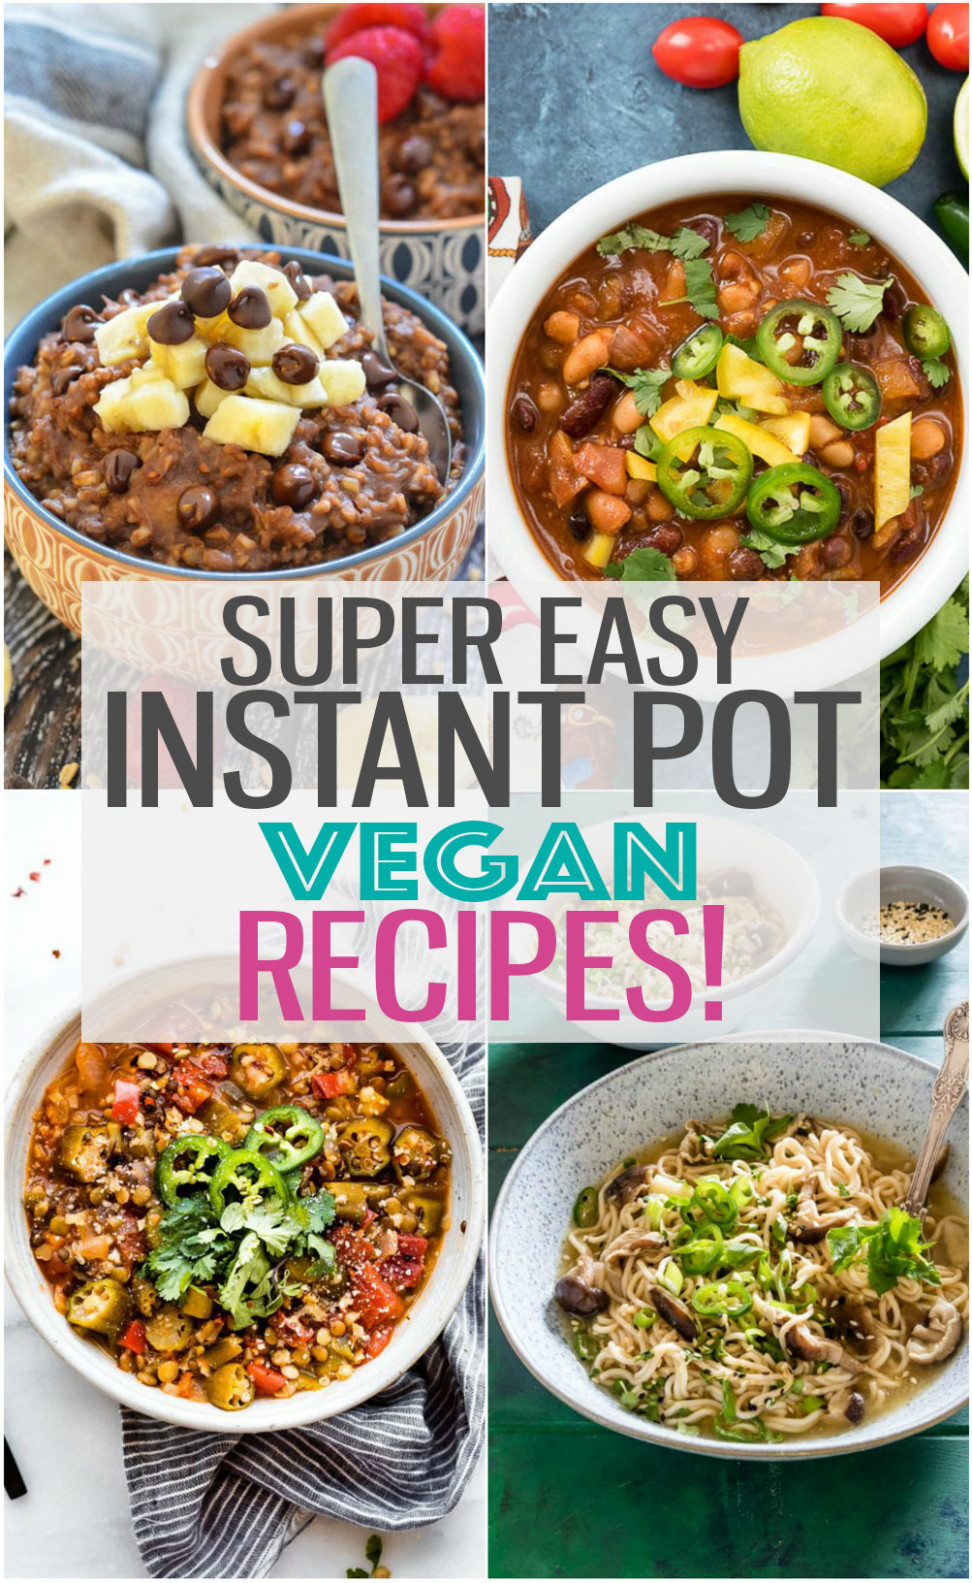 15 Ultimate Instant Pot Vegan Recipes - Eating Instantly - recipes vegetarian instant pot